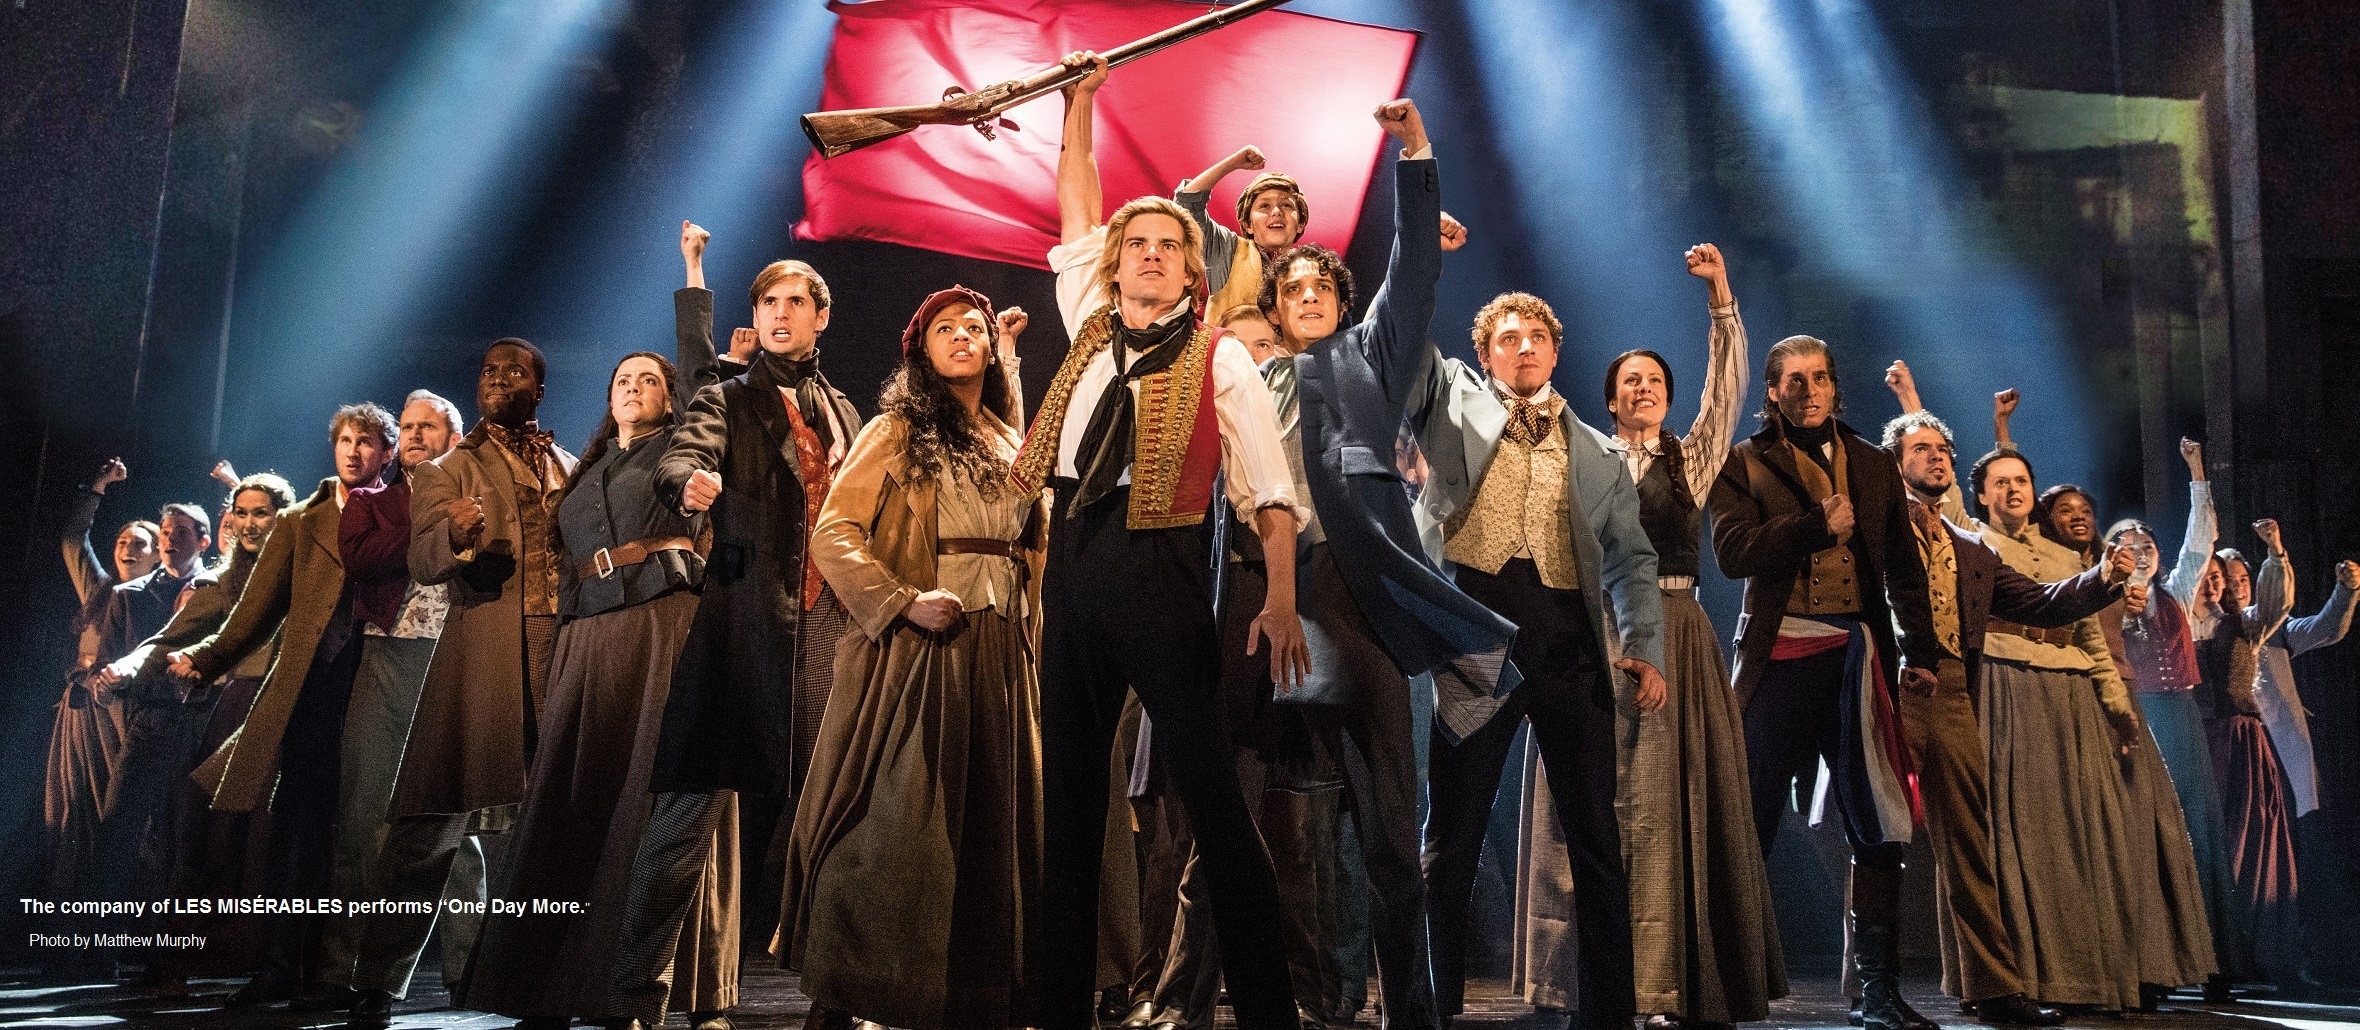 Les Misérables | Barbara B. Mann - Performing Arts Hall